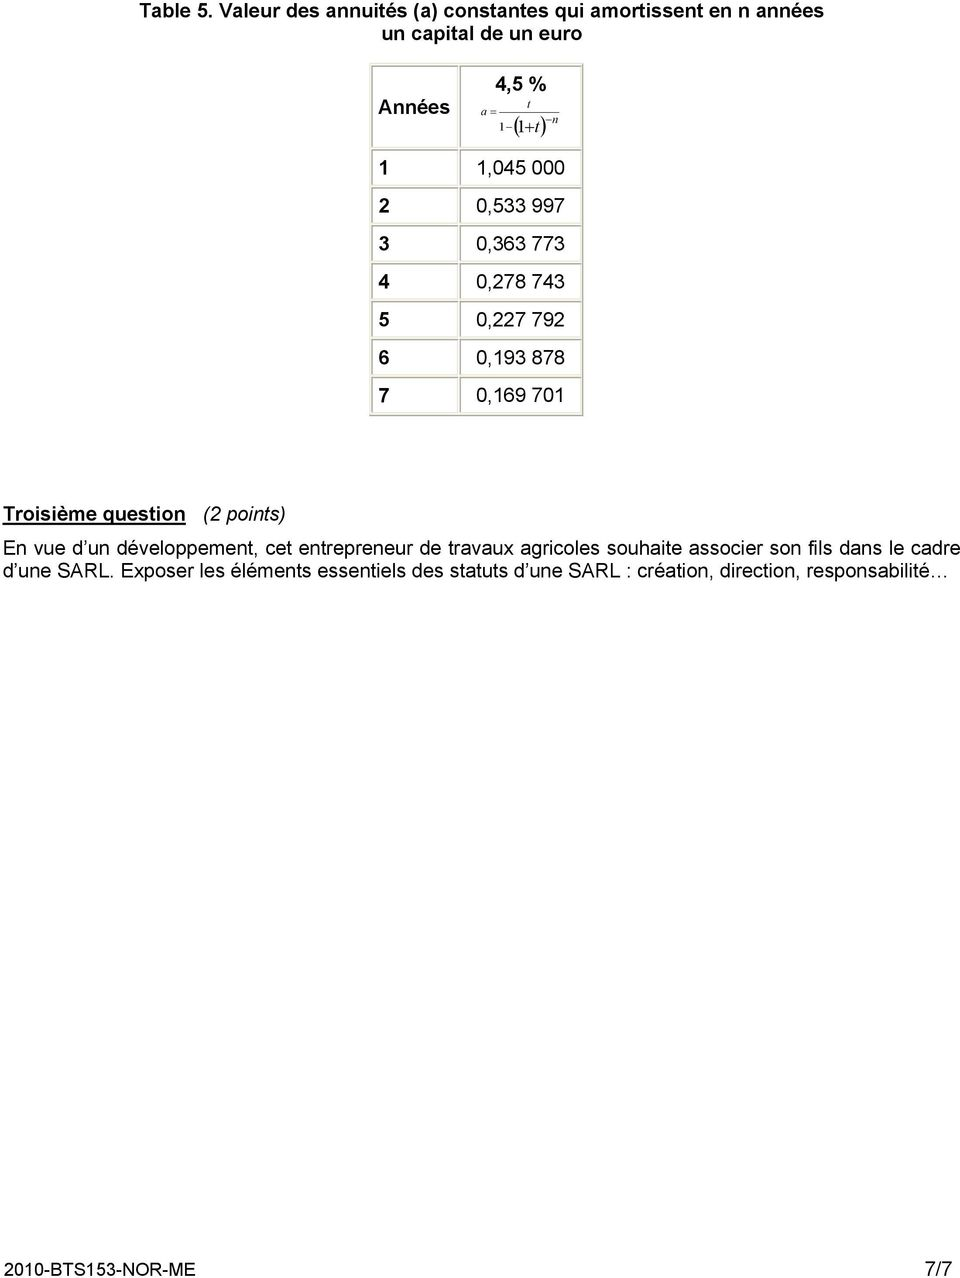 1,045 000 2 0,533 997 3 0,363 773 4 0,278 743 5 0,227 792 6 0,193 878 7 0,169 701 Troisième question (2 points) En vue